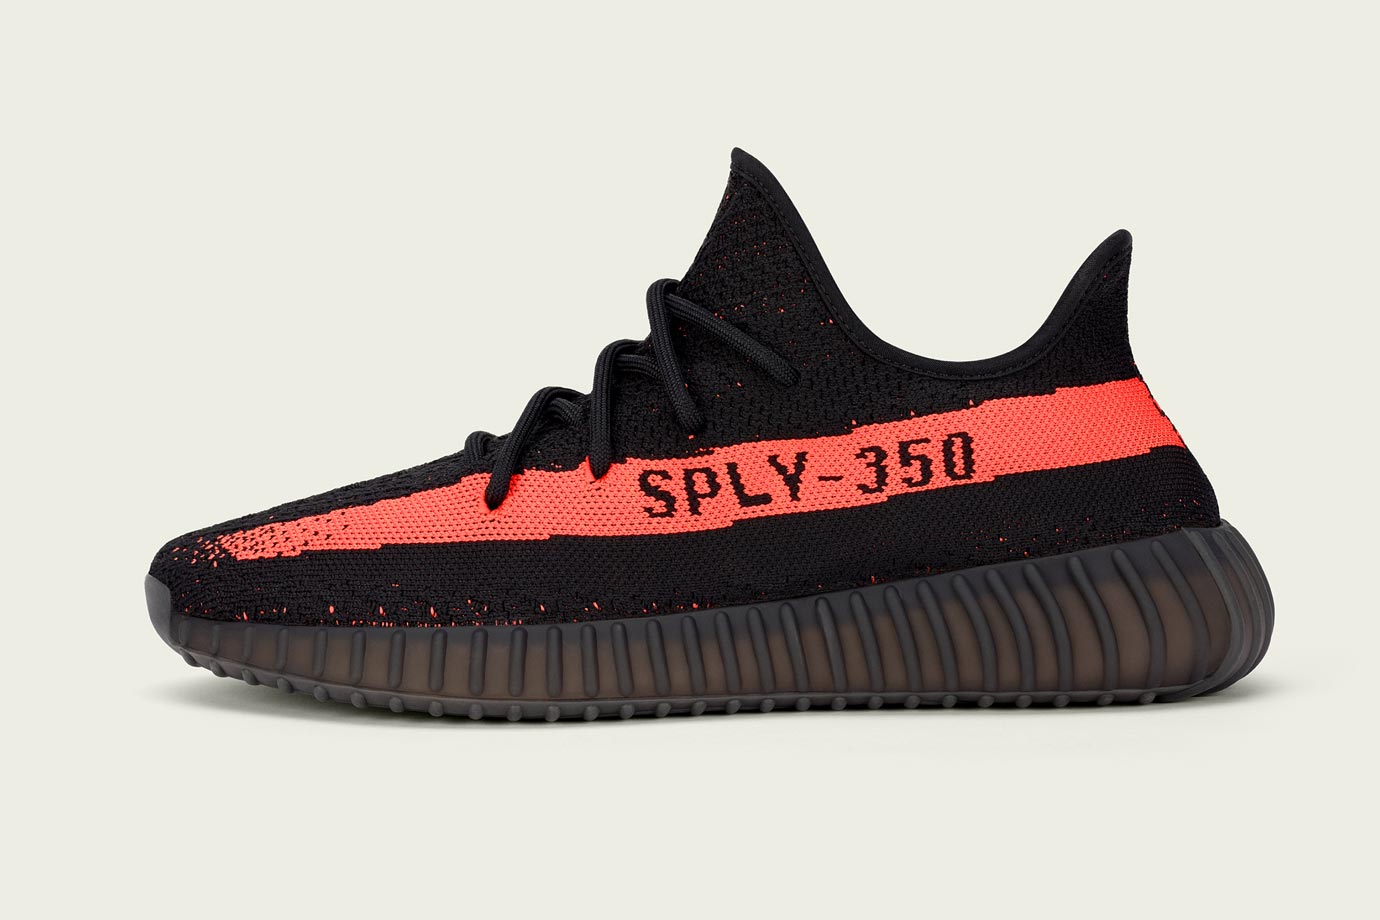 temperament shoes 100% genuine no sale tax adidas Originals x Kanye West: YEEZY BOOST 350 V2